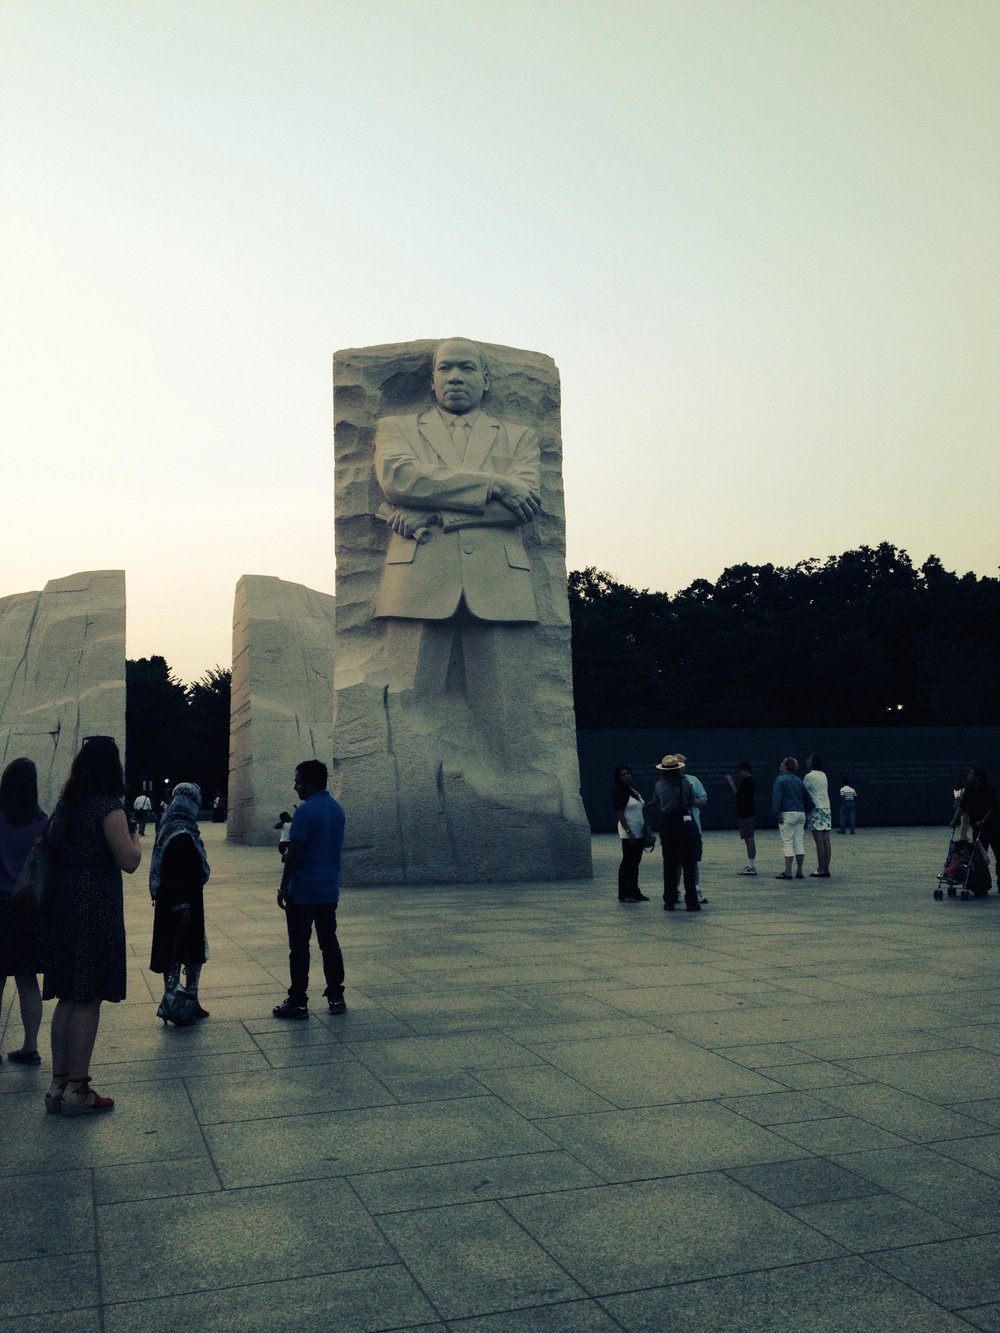 MLKMonument.jpeg (Photo by Brian Deuter's iPhone camera)